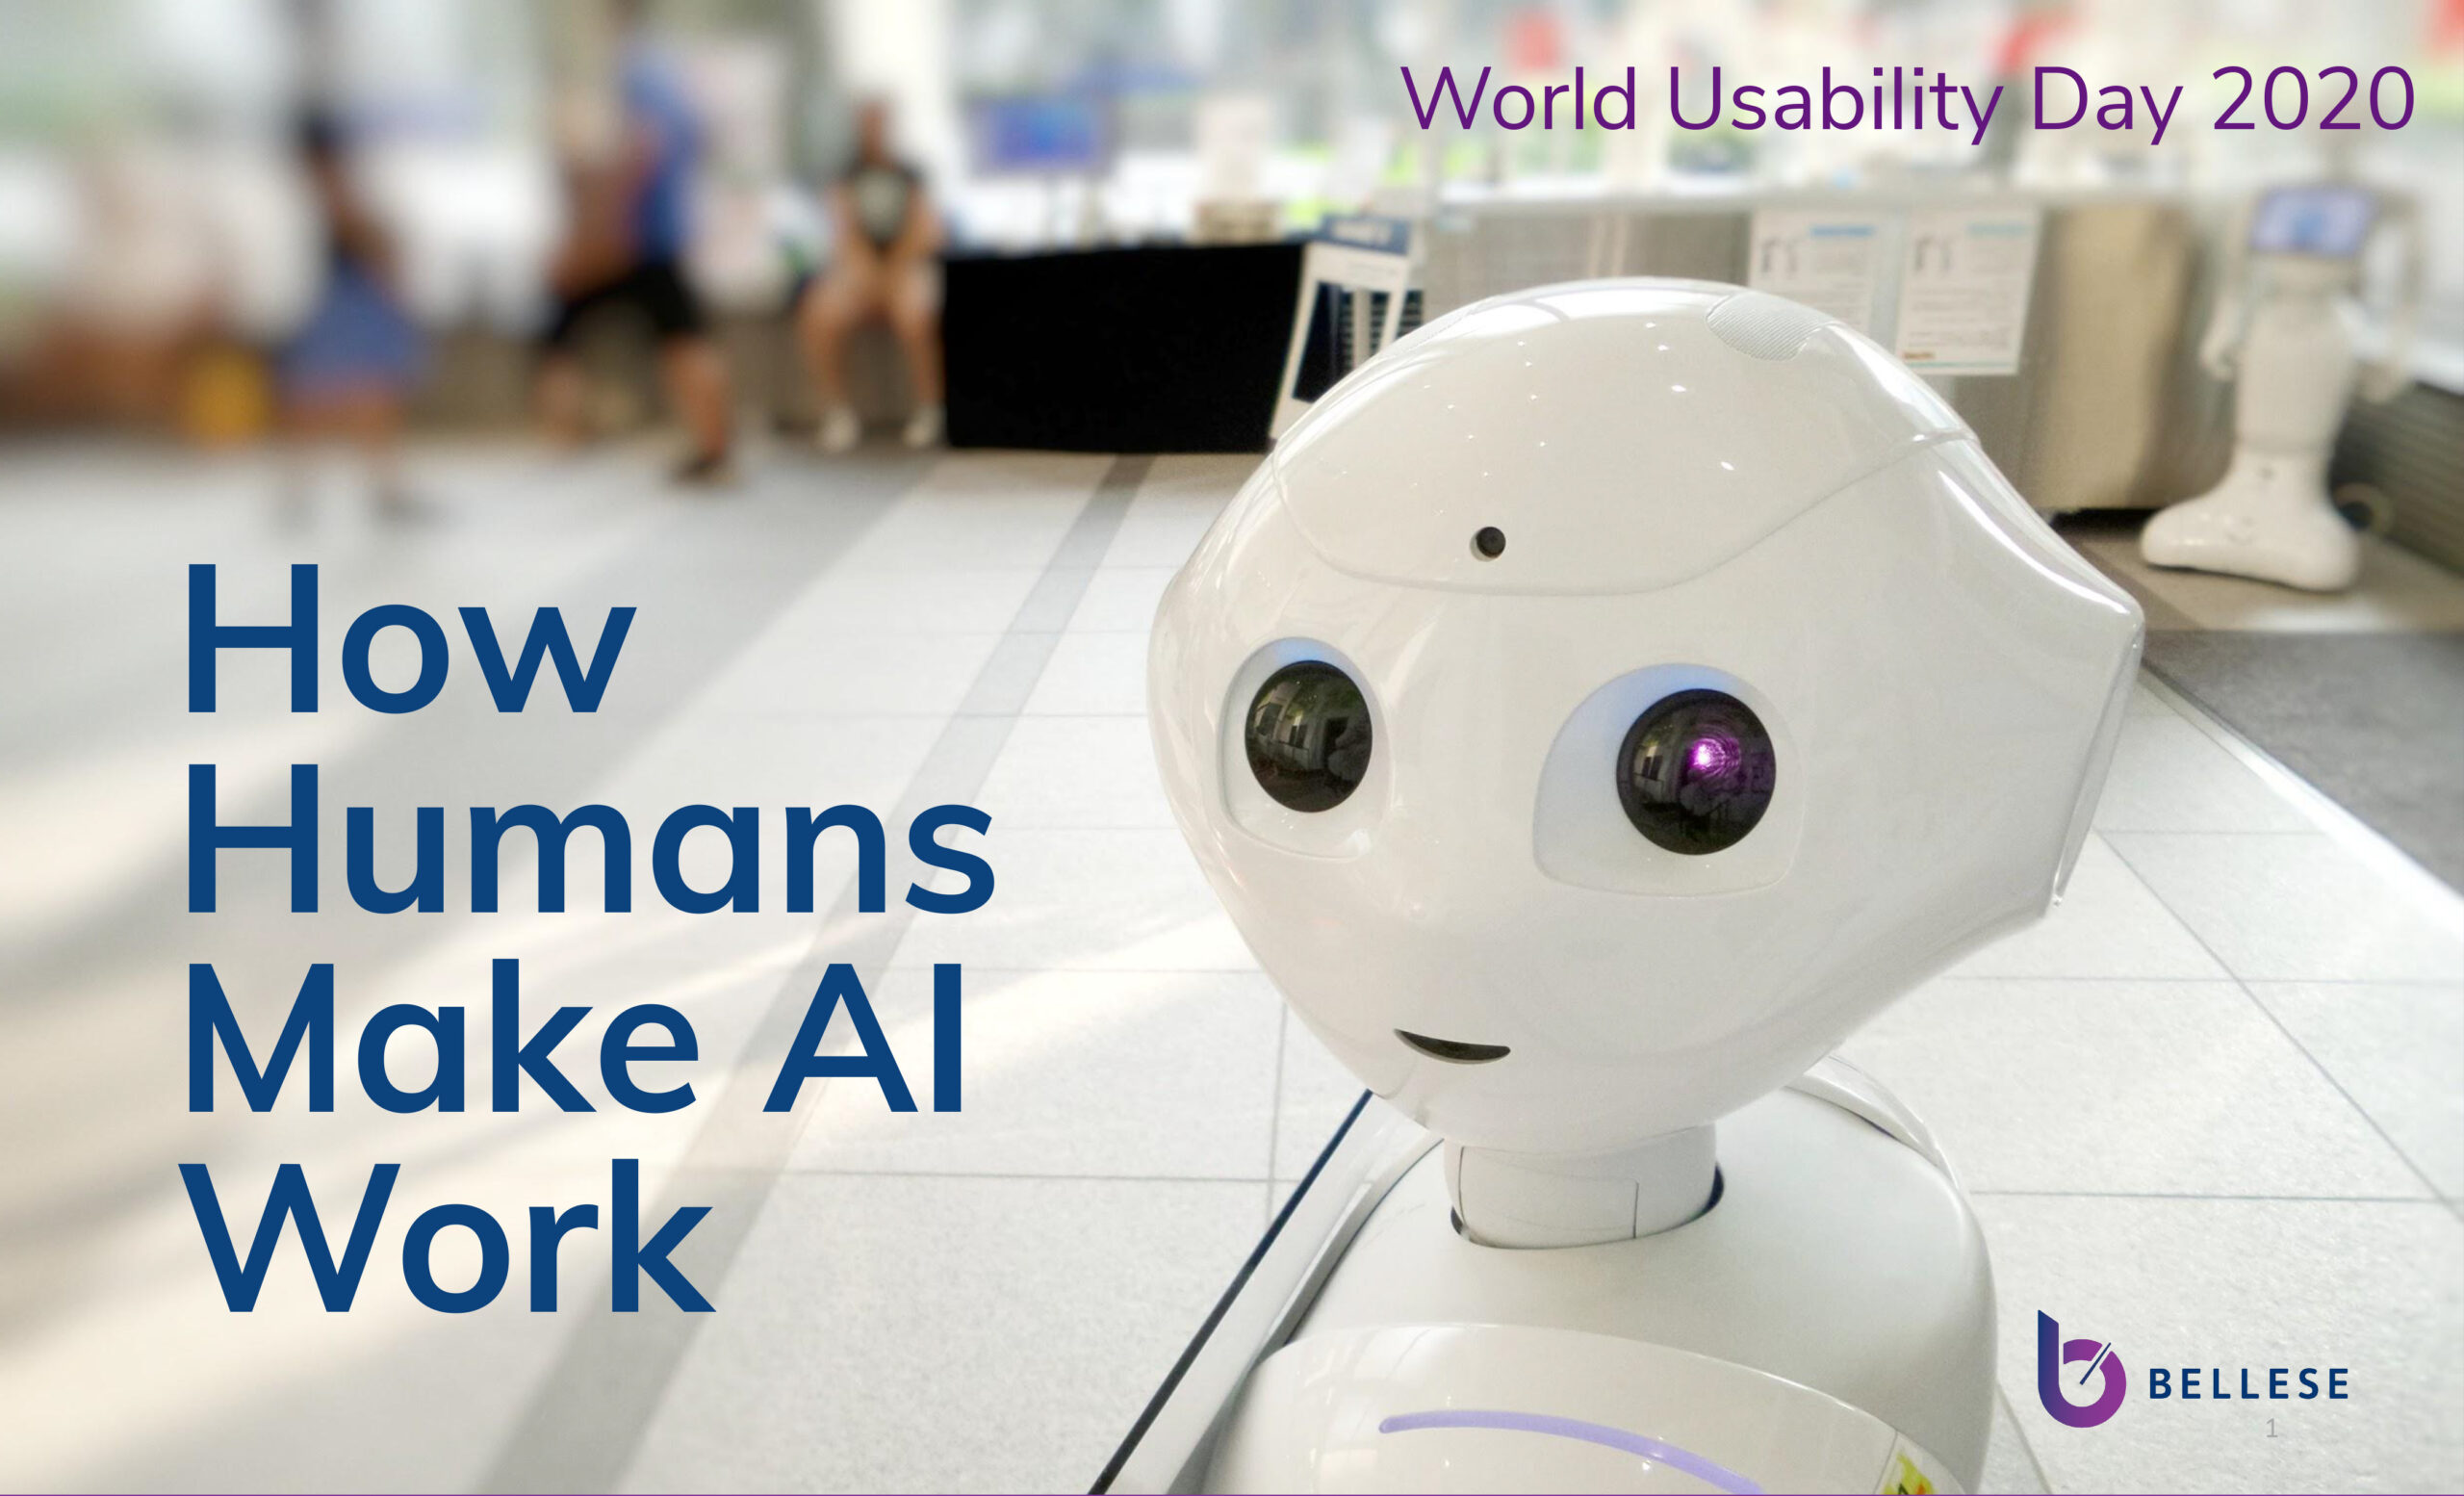 In the spring of 2020 I was honored to lead a discussion at World Usability Day on the important role AI will play in the future.